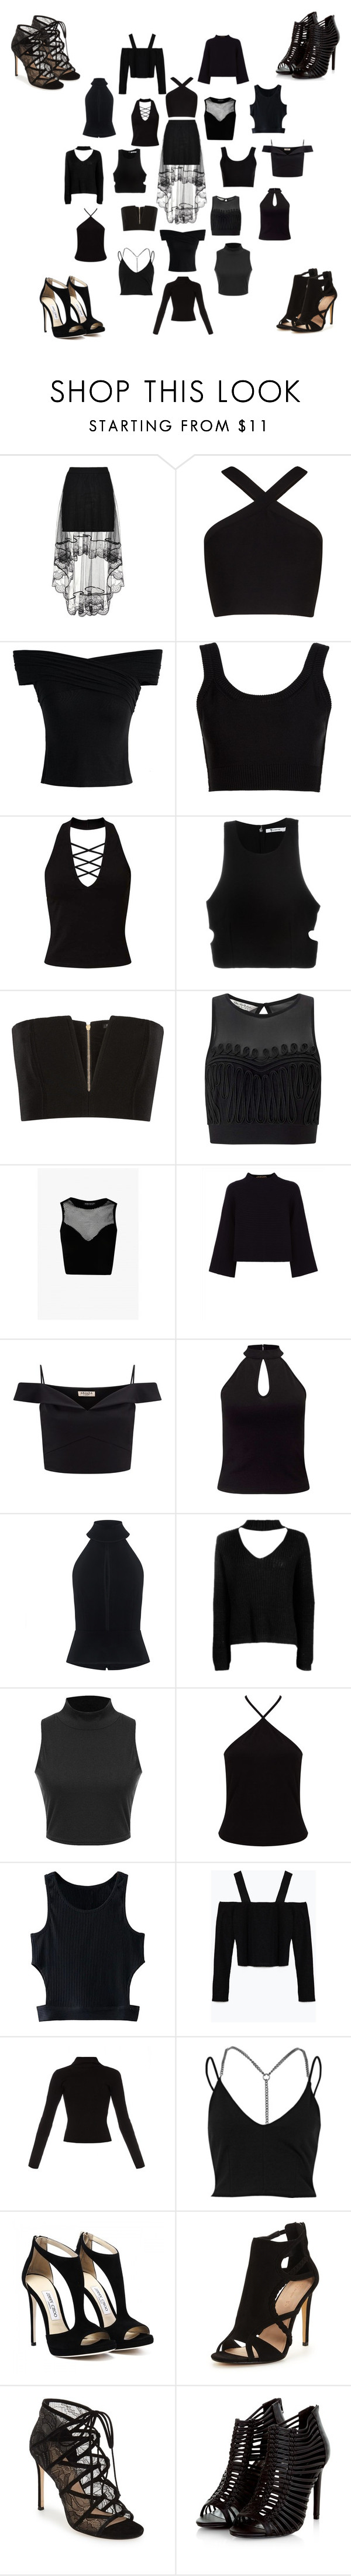 """""""1Skirt-19Shirts-4Shoes"""" by arts22 ❤ liked on Polyvore featuring BCBGMAXAZRIA, Chicwish, Calvin Klein Collection, Miss Selfridge, T By Alexander Wang, Balmain, Jaeger, Lipsy, C/MEO COLLECTIVE and WithChic"""